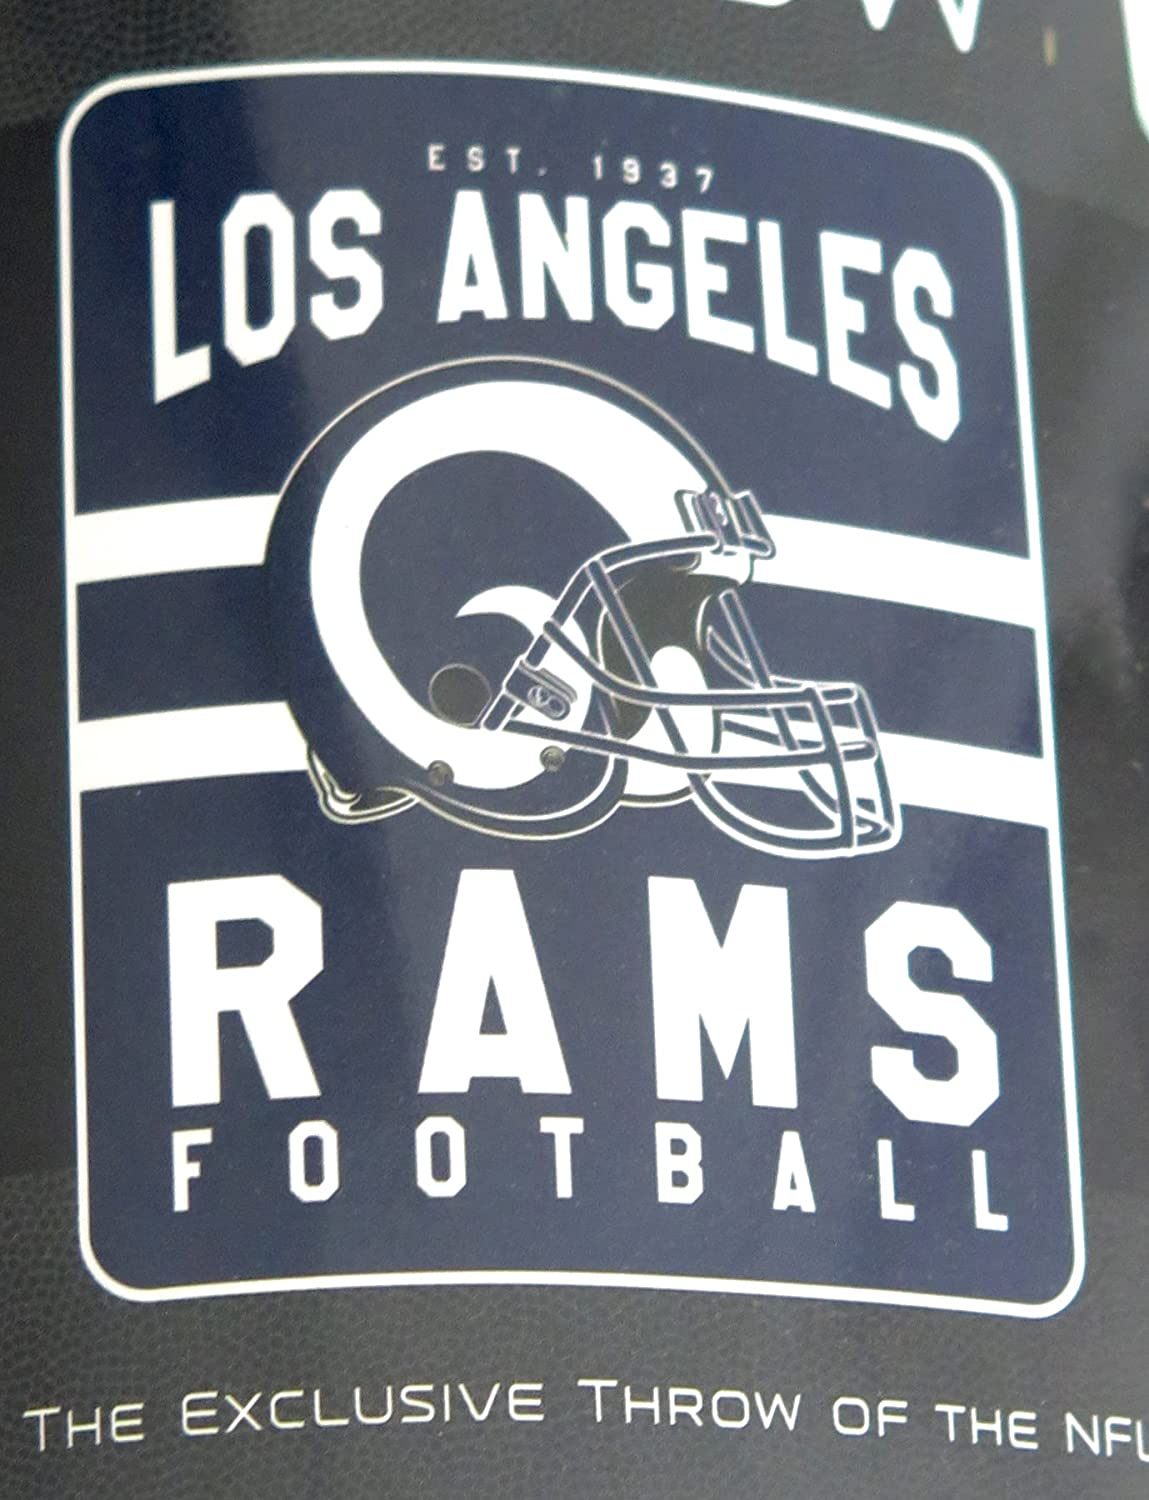 Los Angeles Rams Blanket and Tumbler Set This Soft Fleece Throw Blanket Will Keep You Warm at The Game or ar Home shopitihi gig